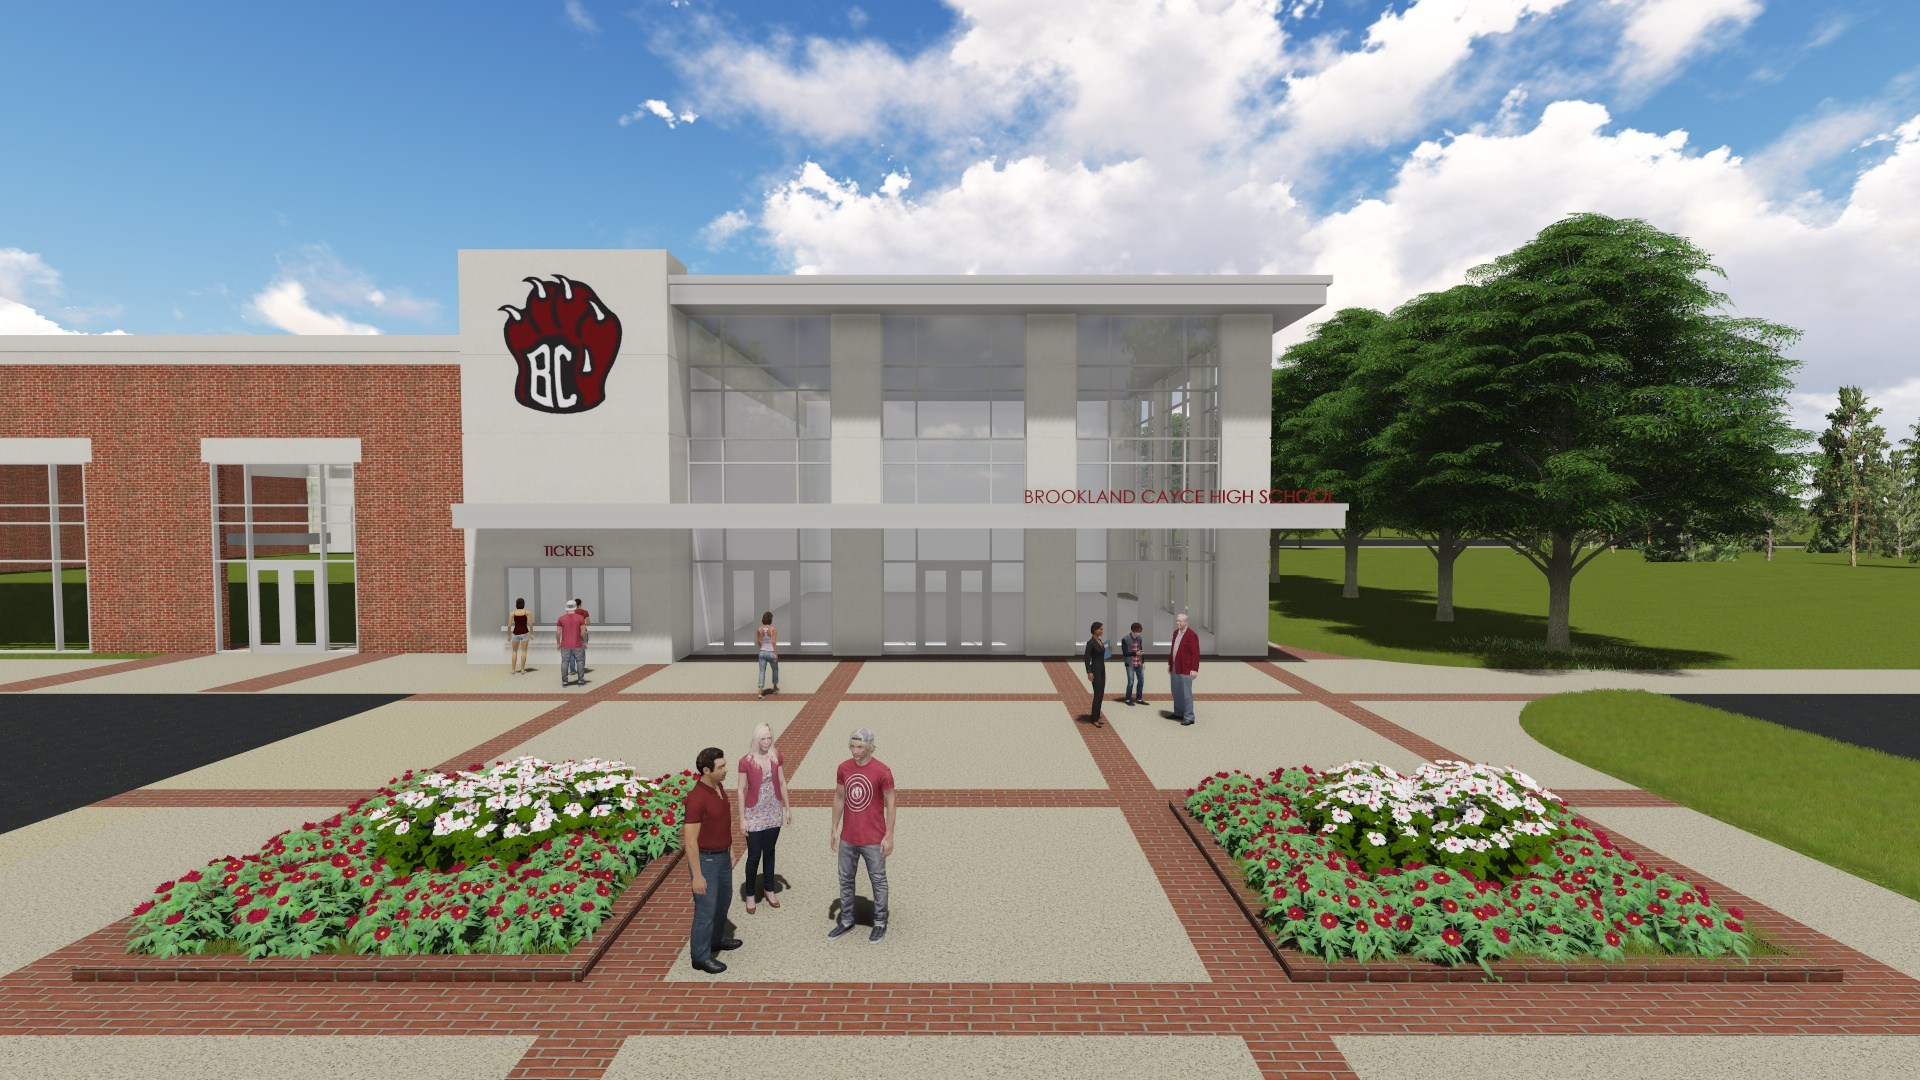 Architect's rendering of Brookland-Cayce High School's new sports arena scheduled to Open January 2019